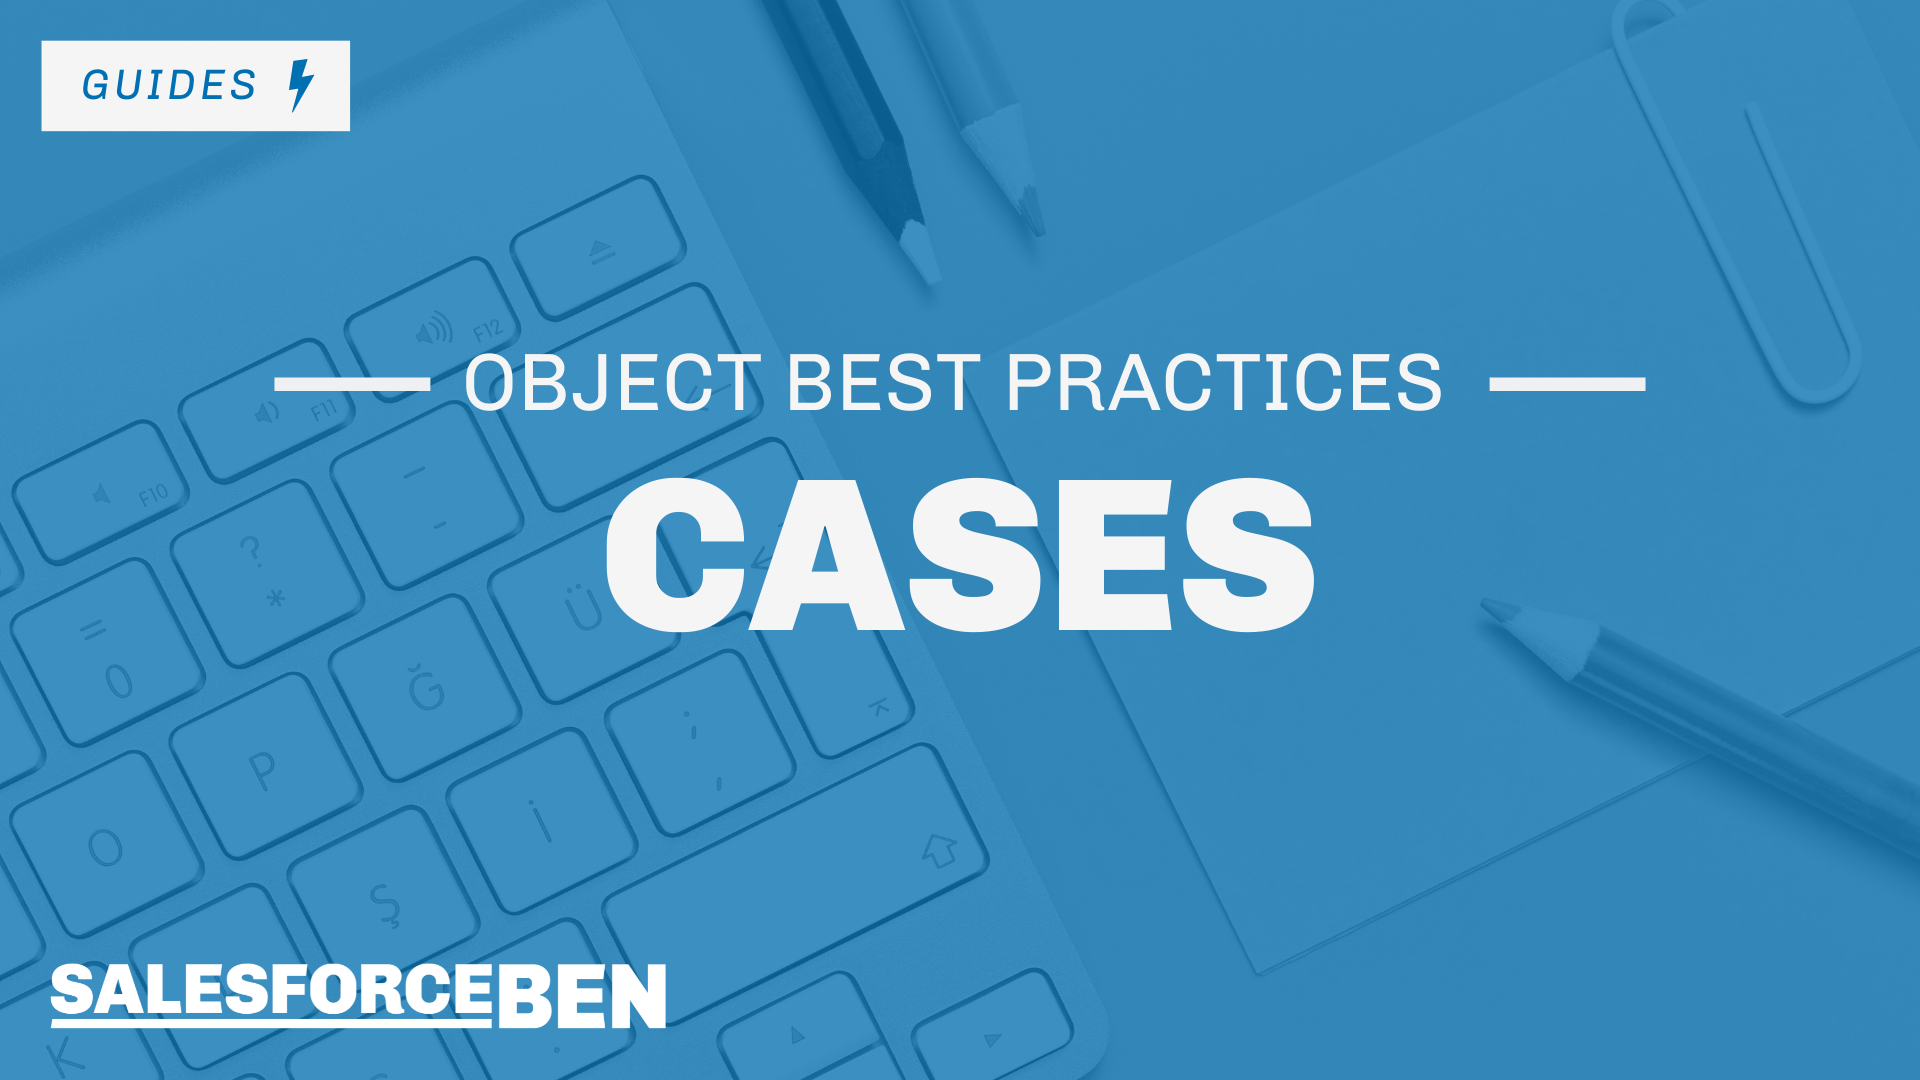 Best Practices for the Salesforce Case Object